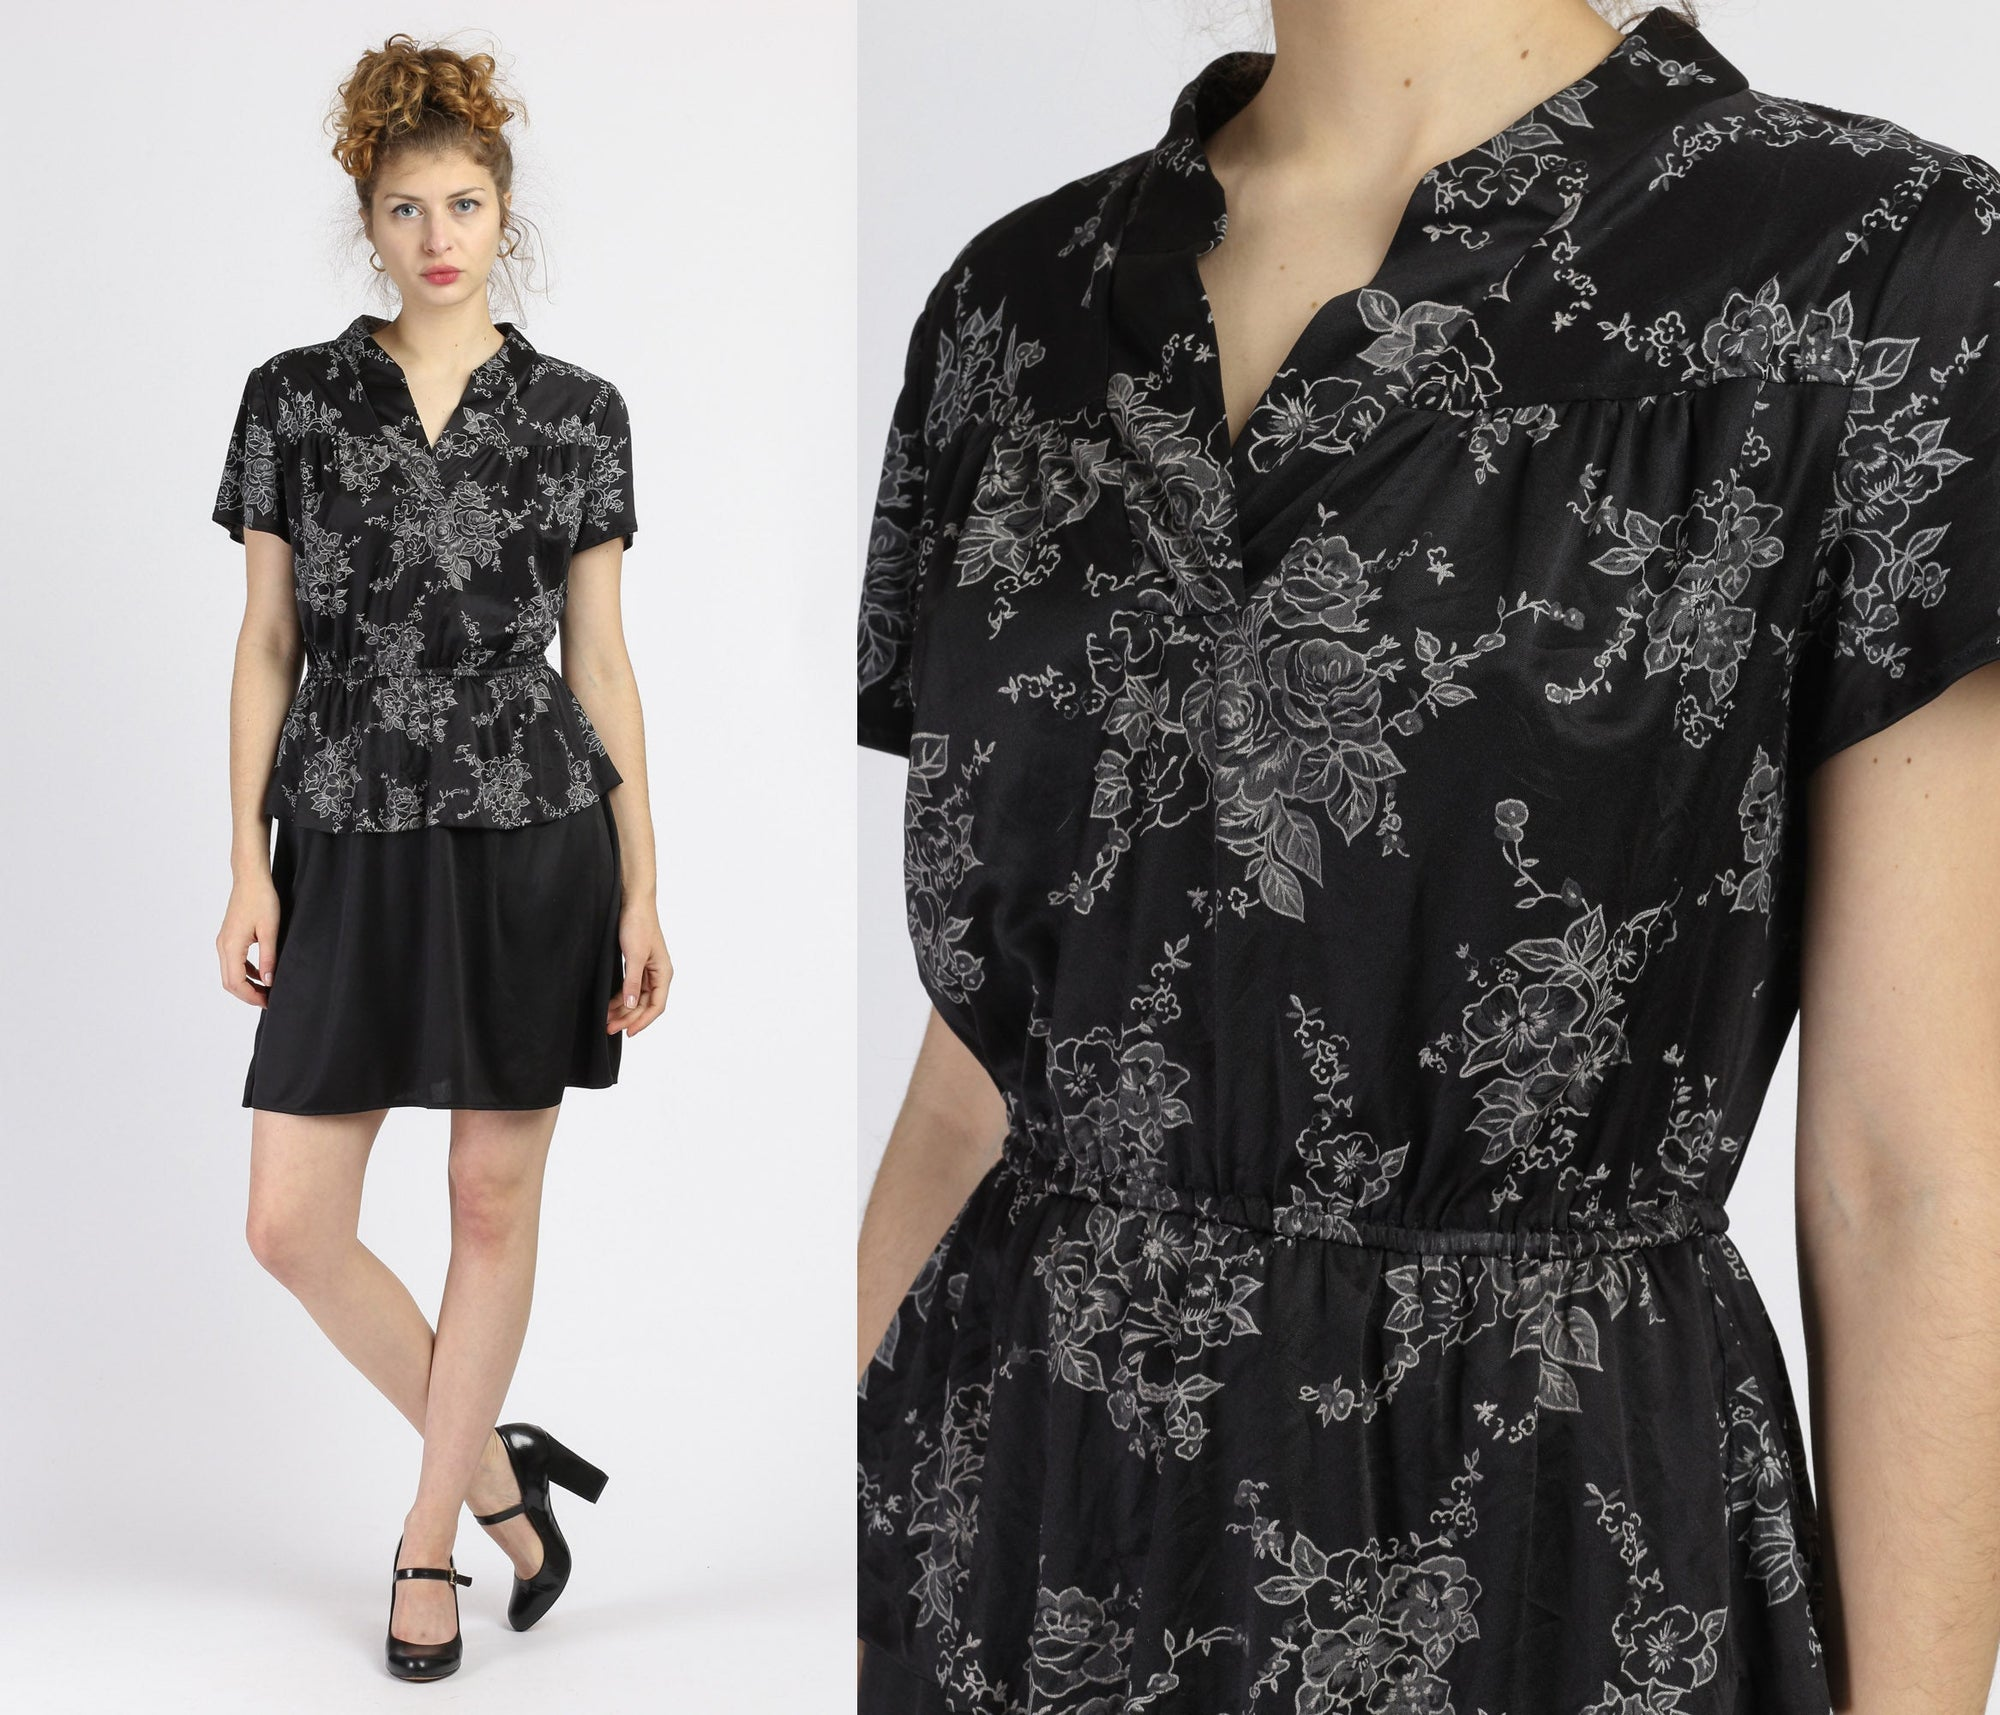 70s Black Floral Peplum Mini Dress - Medium